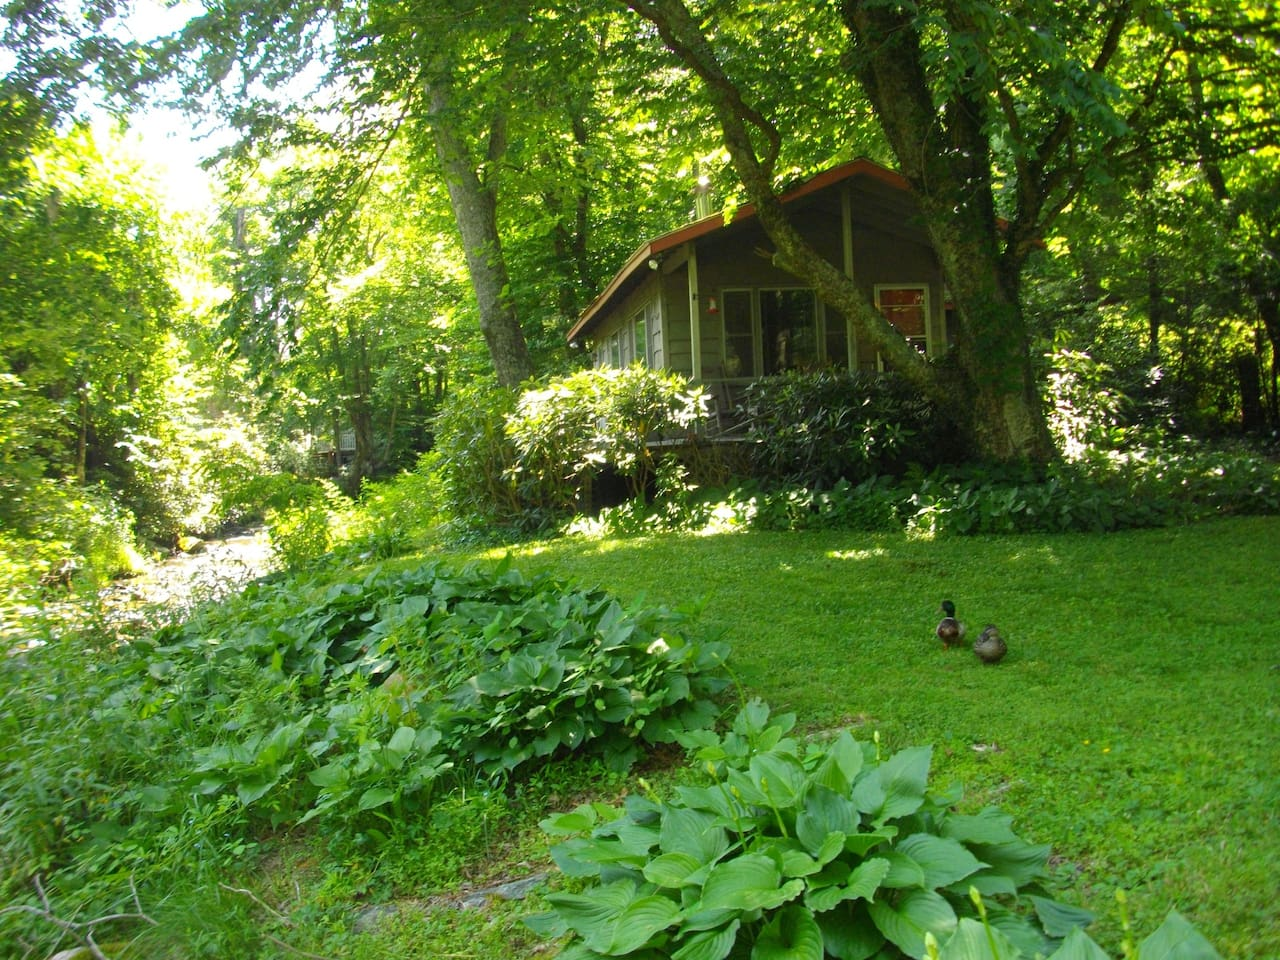 Summer view with creek on side, ducks and porch with rocking chairs